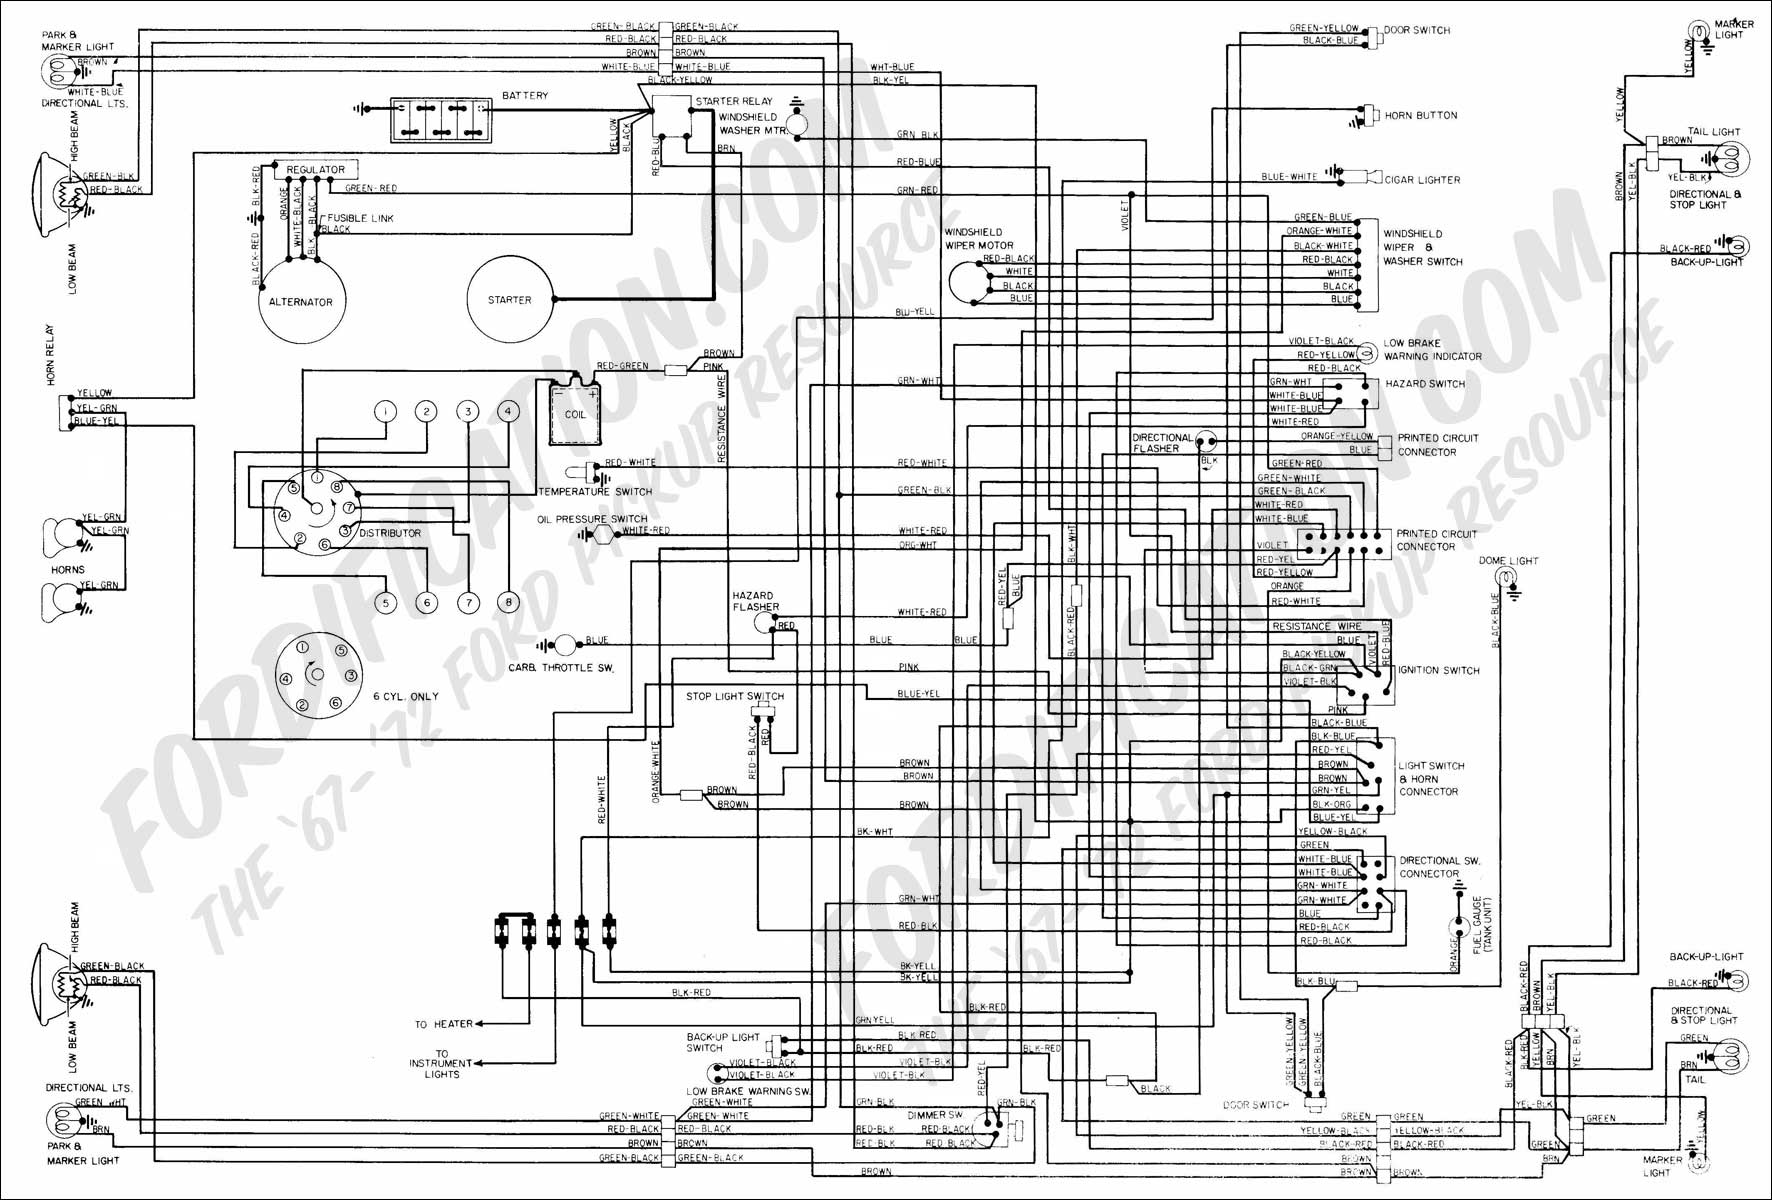 97 Mazda Protege Transmission Schematic furthermore Isuzu Rodeo Fuse Box also 2012 07 01 archive additionally 2002 Chevy Cavalier Wiring Diagram Schematic likewise 94 F150 Transfer Case Wiring Diagram. on 1997 kia sportage radio wiring diagram